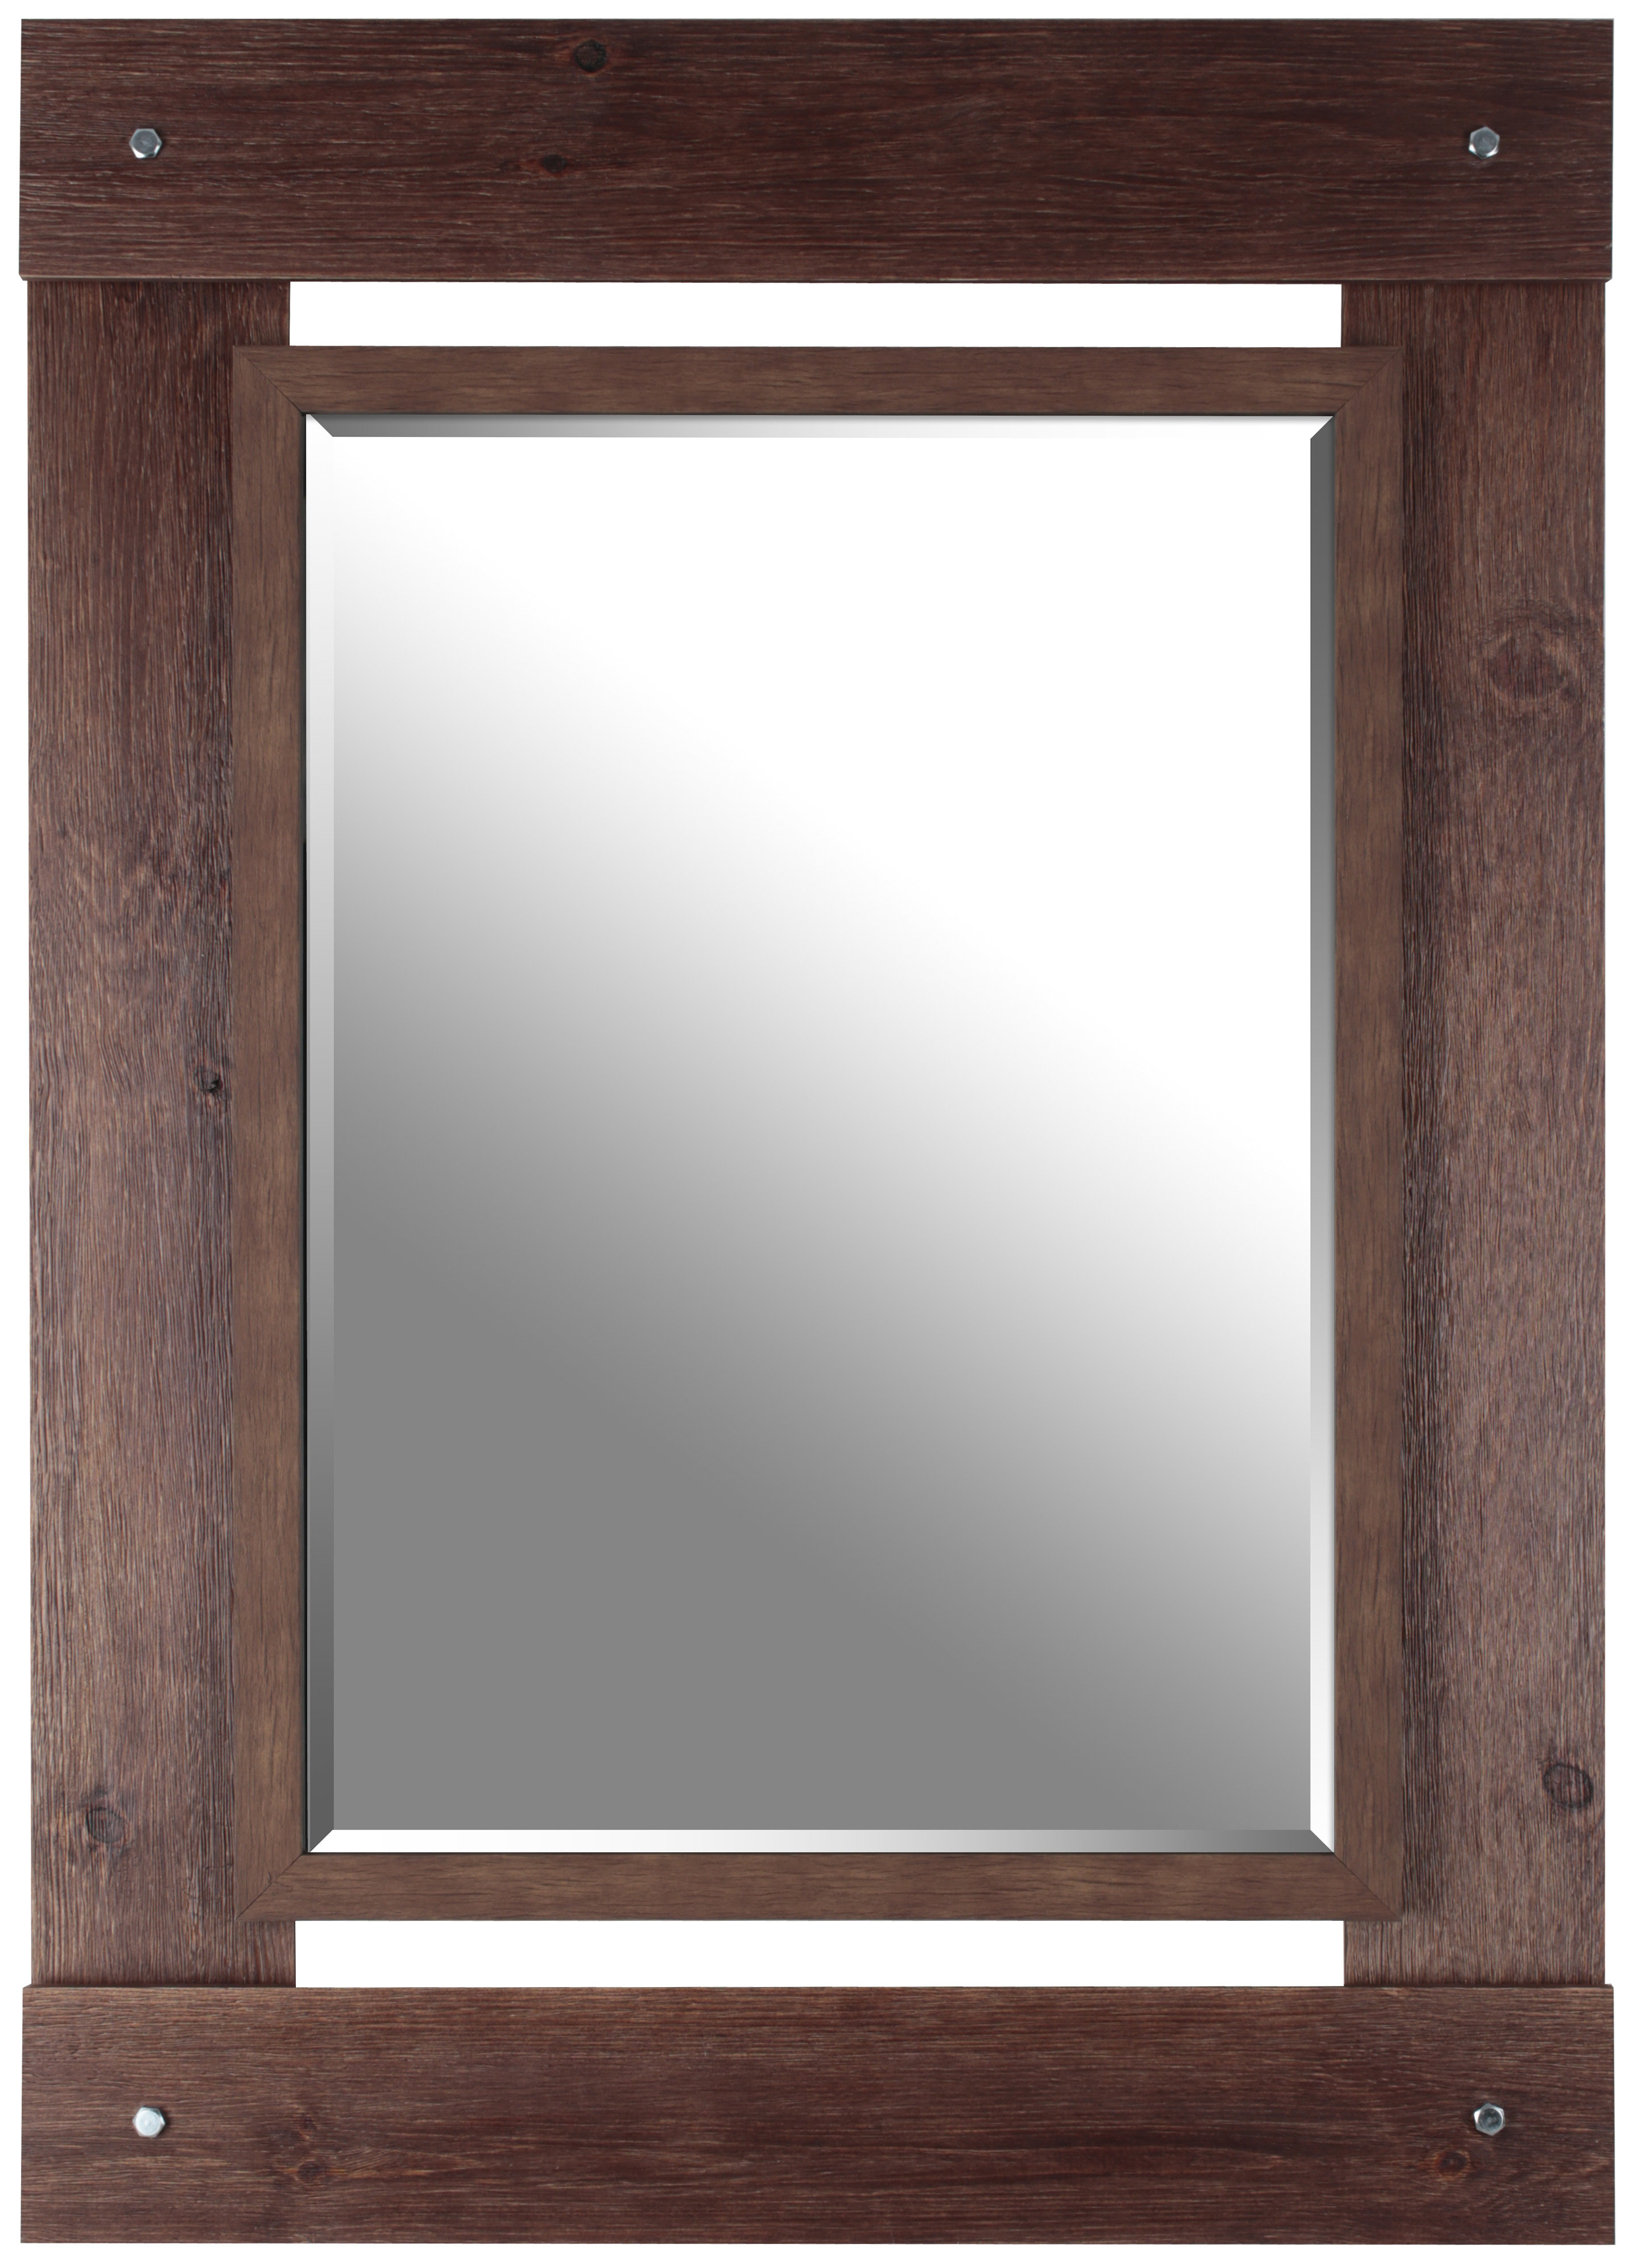 Modern & Contemporary Beveled Wall Mirror Throughout Most Popular Modern & Contemporary Beveled Wall Mirrors (View 7 of 20)